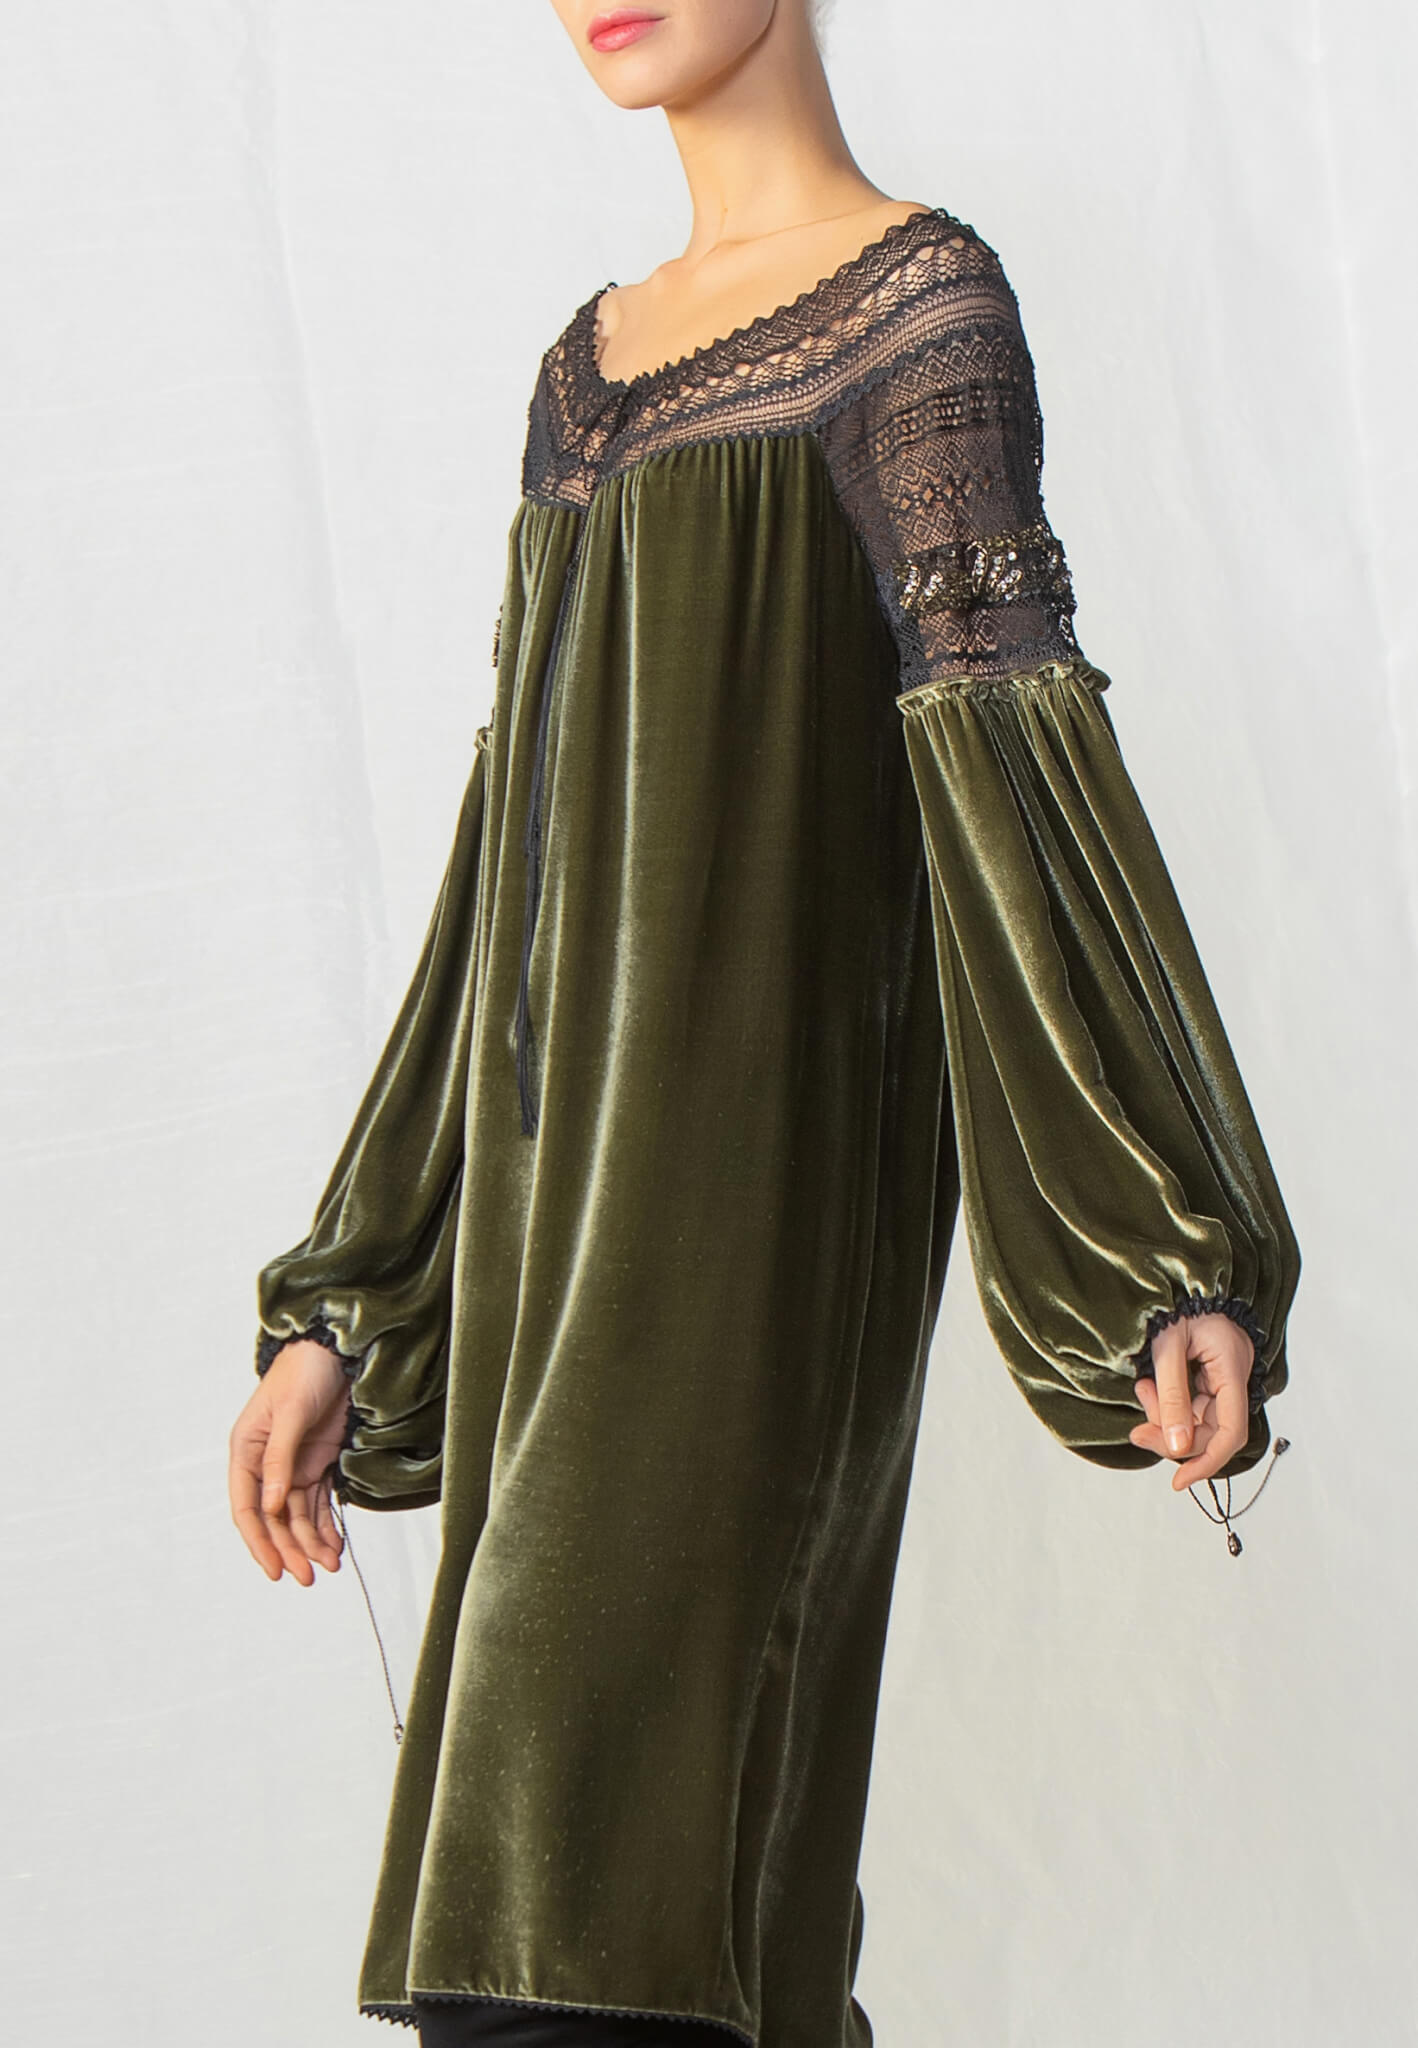 Green velour dress with lace